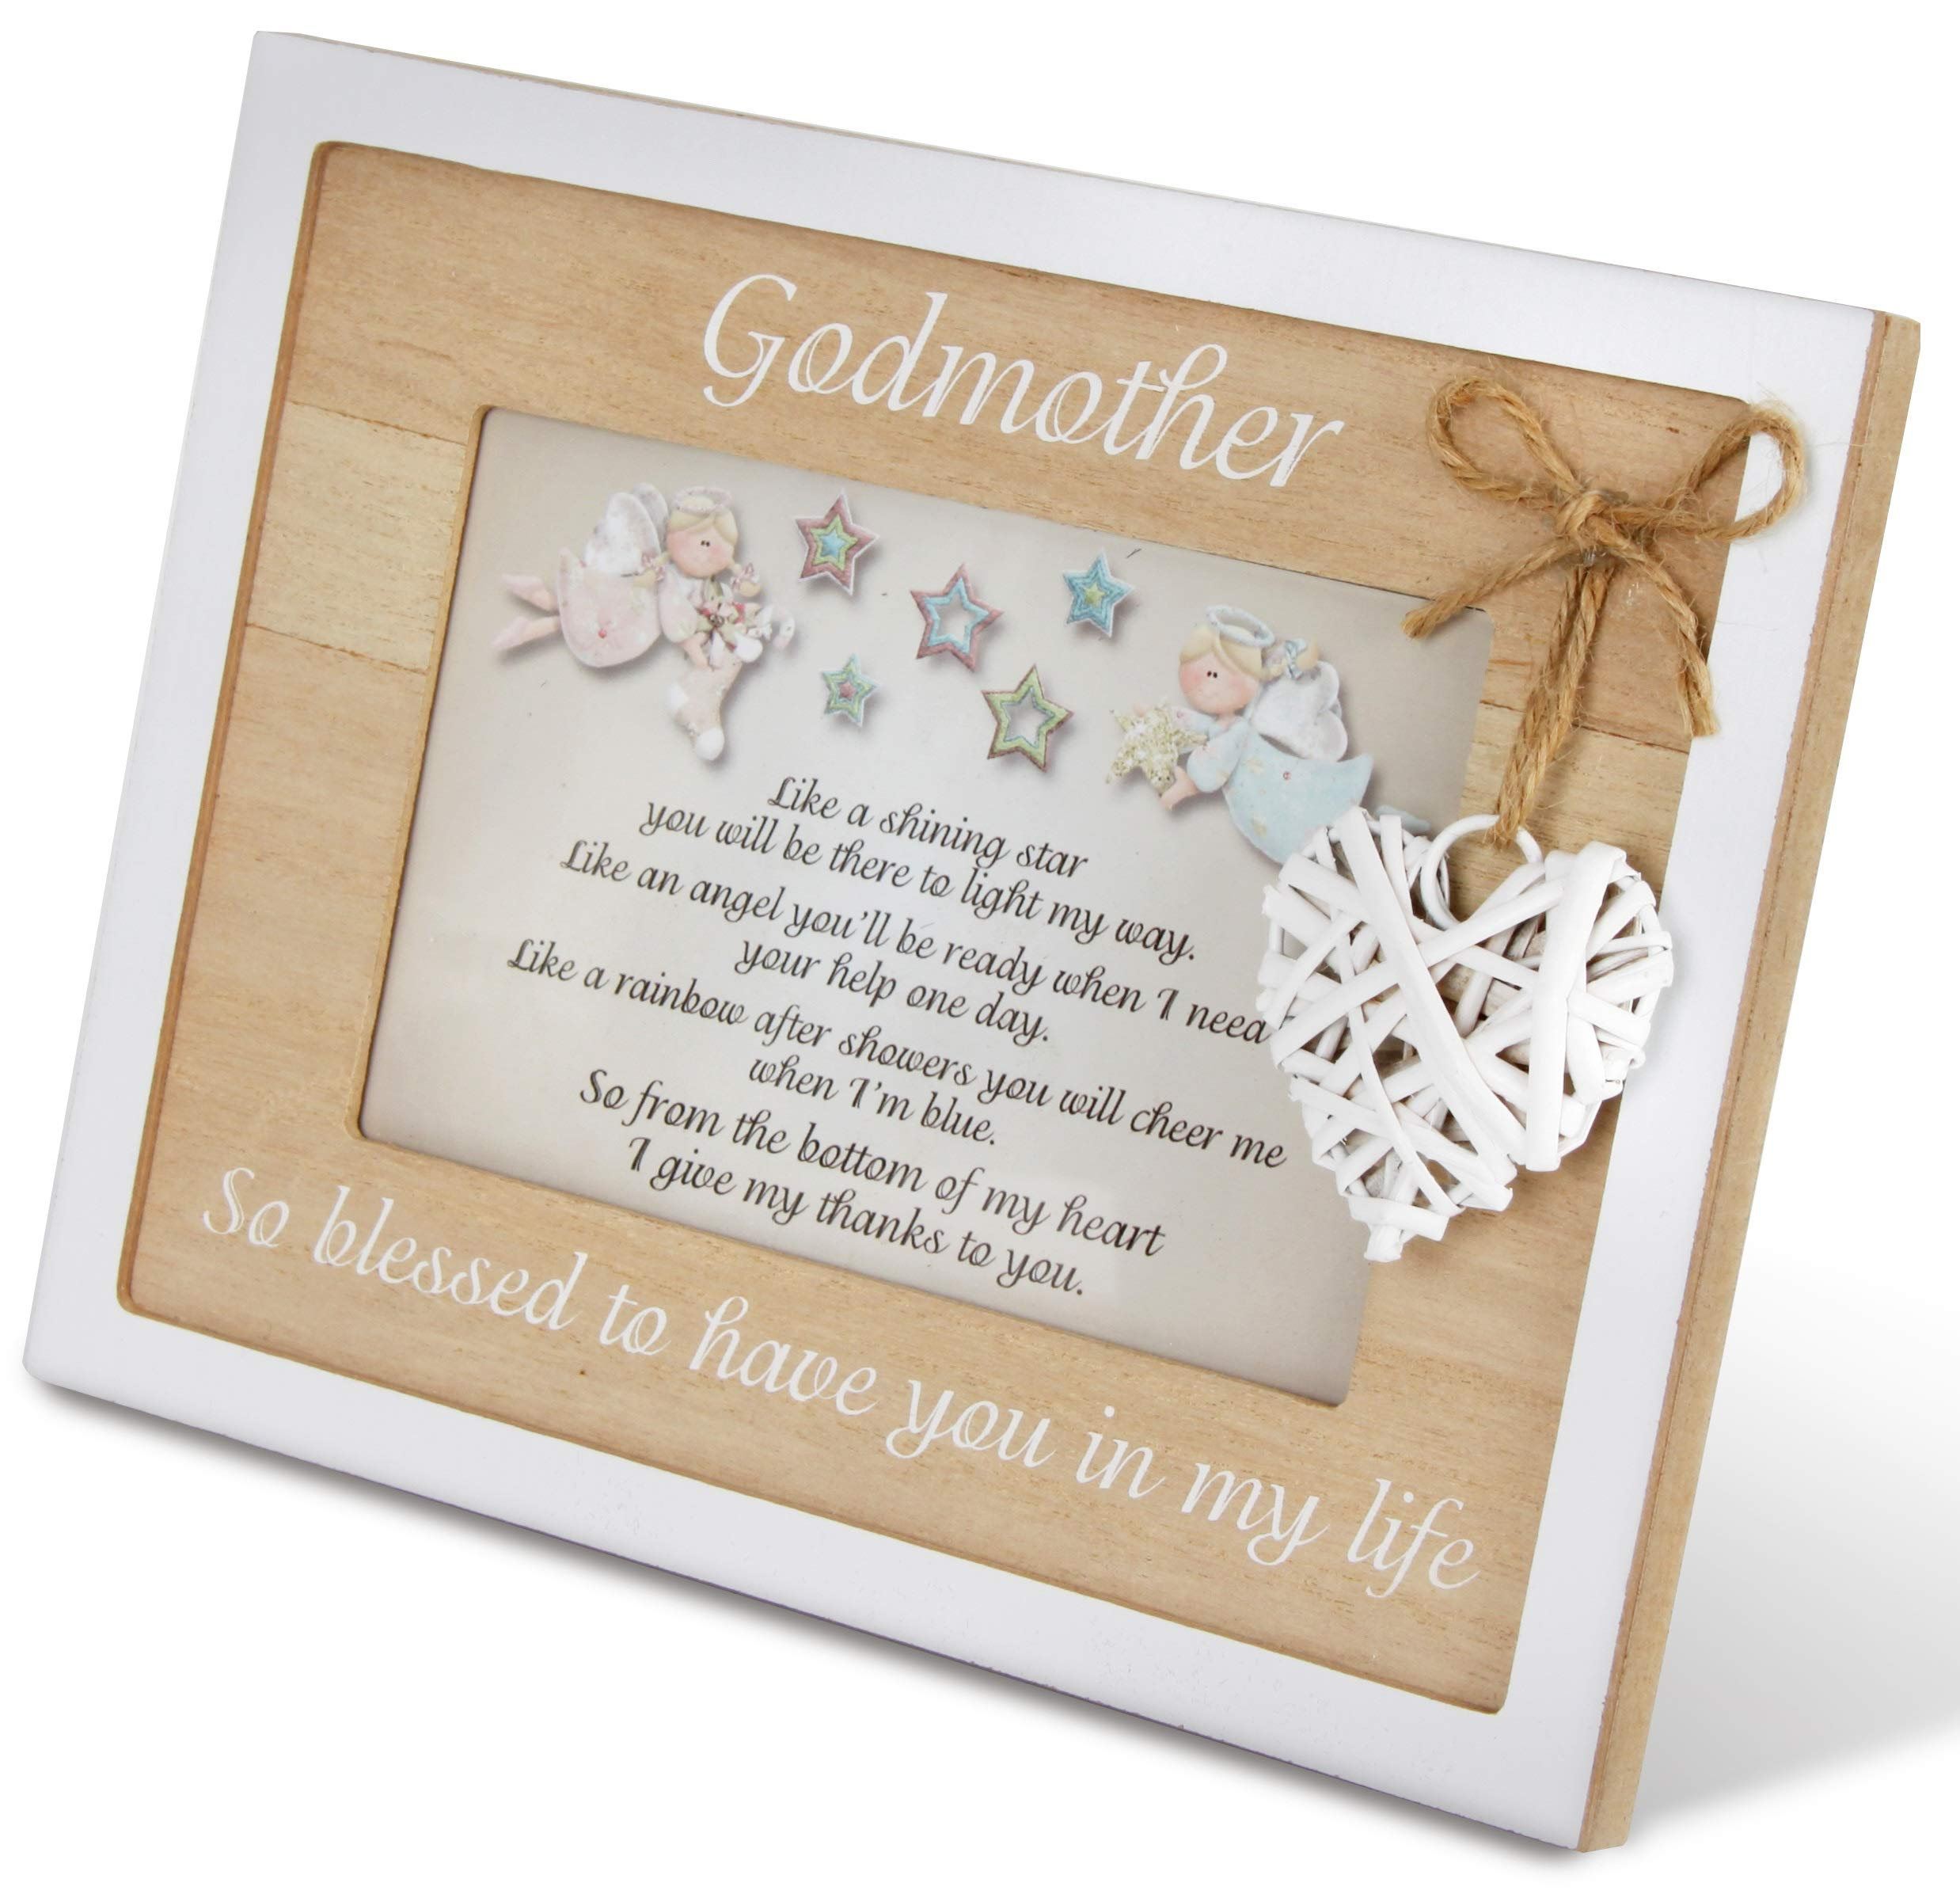 Godmother Frame 4x6 Perfect Godmother Gift from Godchild for Christening Baptism Christmas Beautiful Quality Picture Frame Keepsake Godparent Gifts